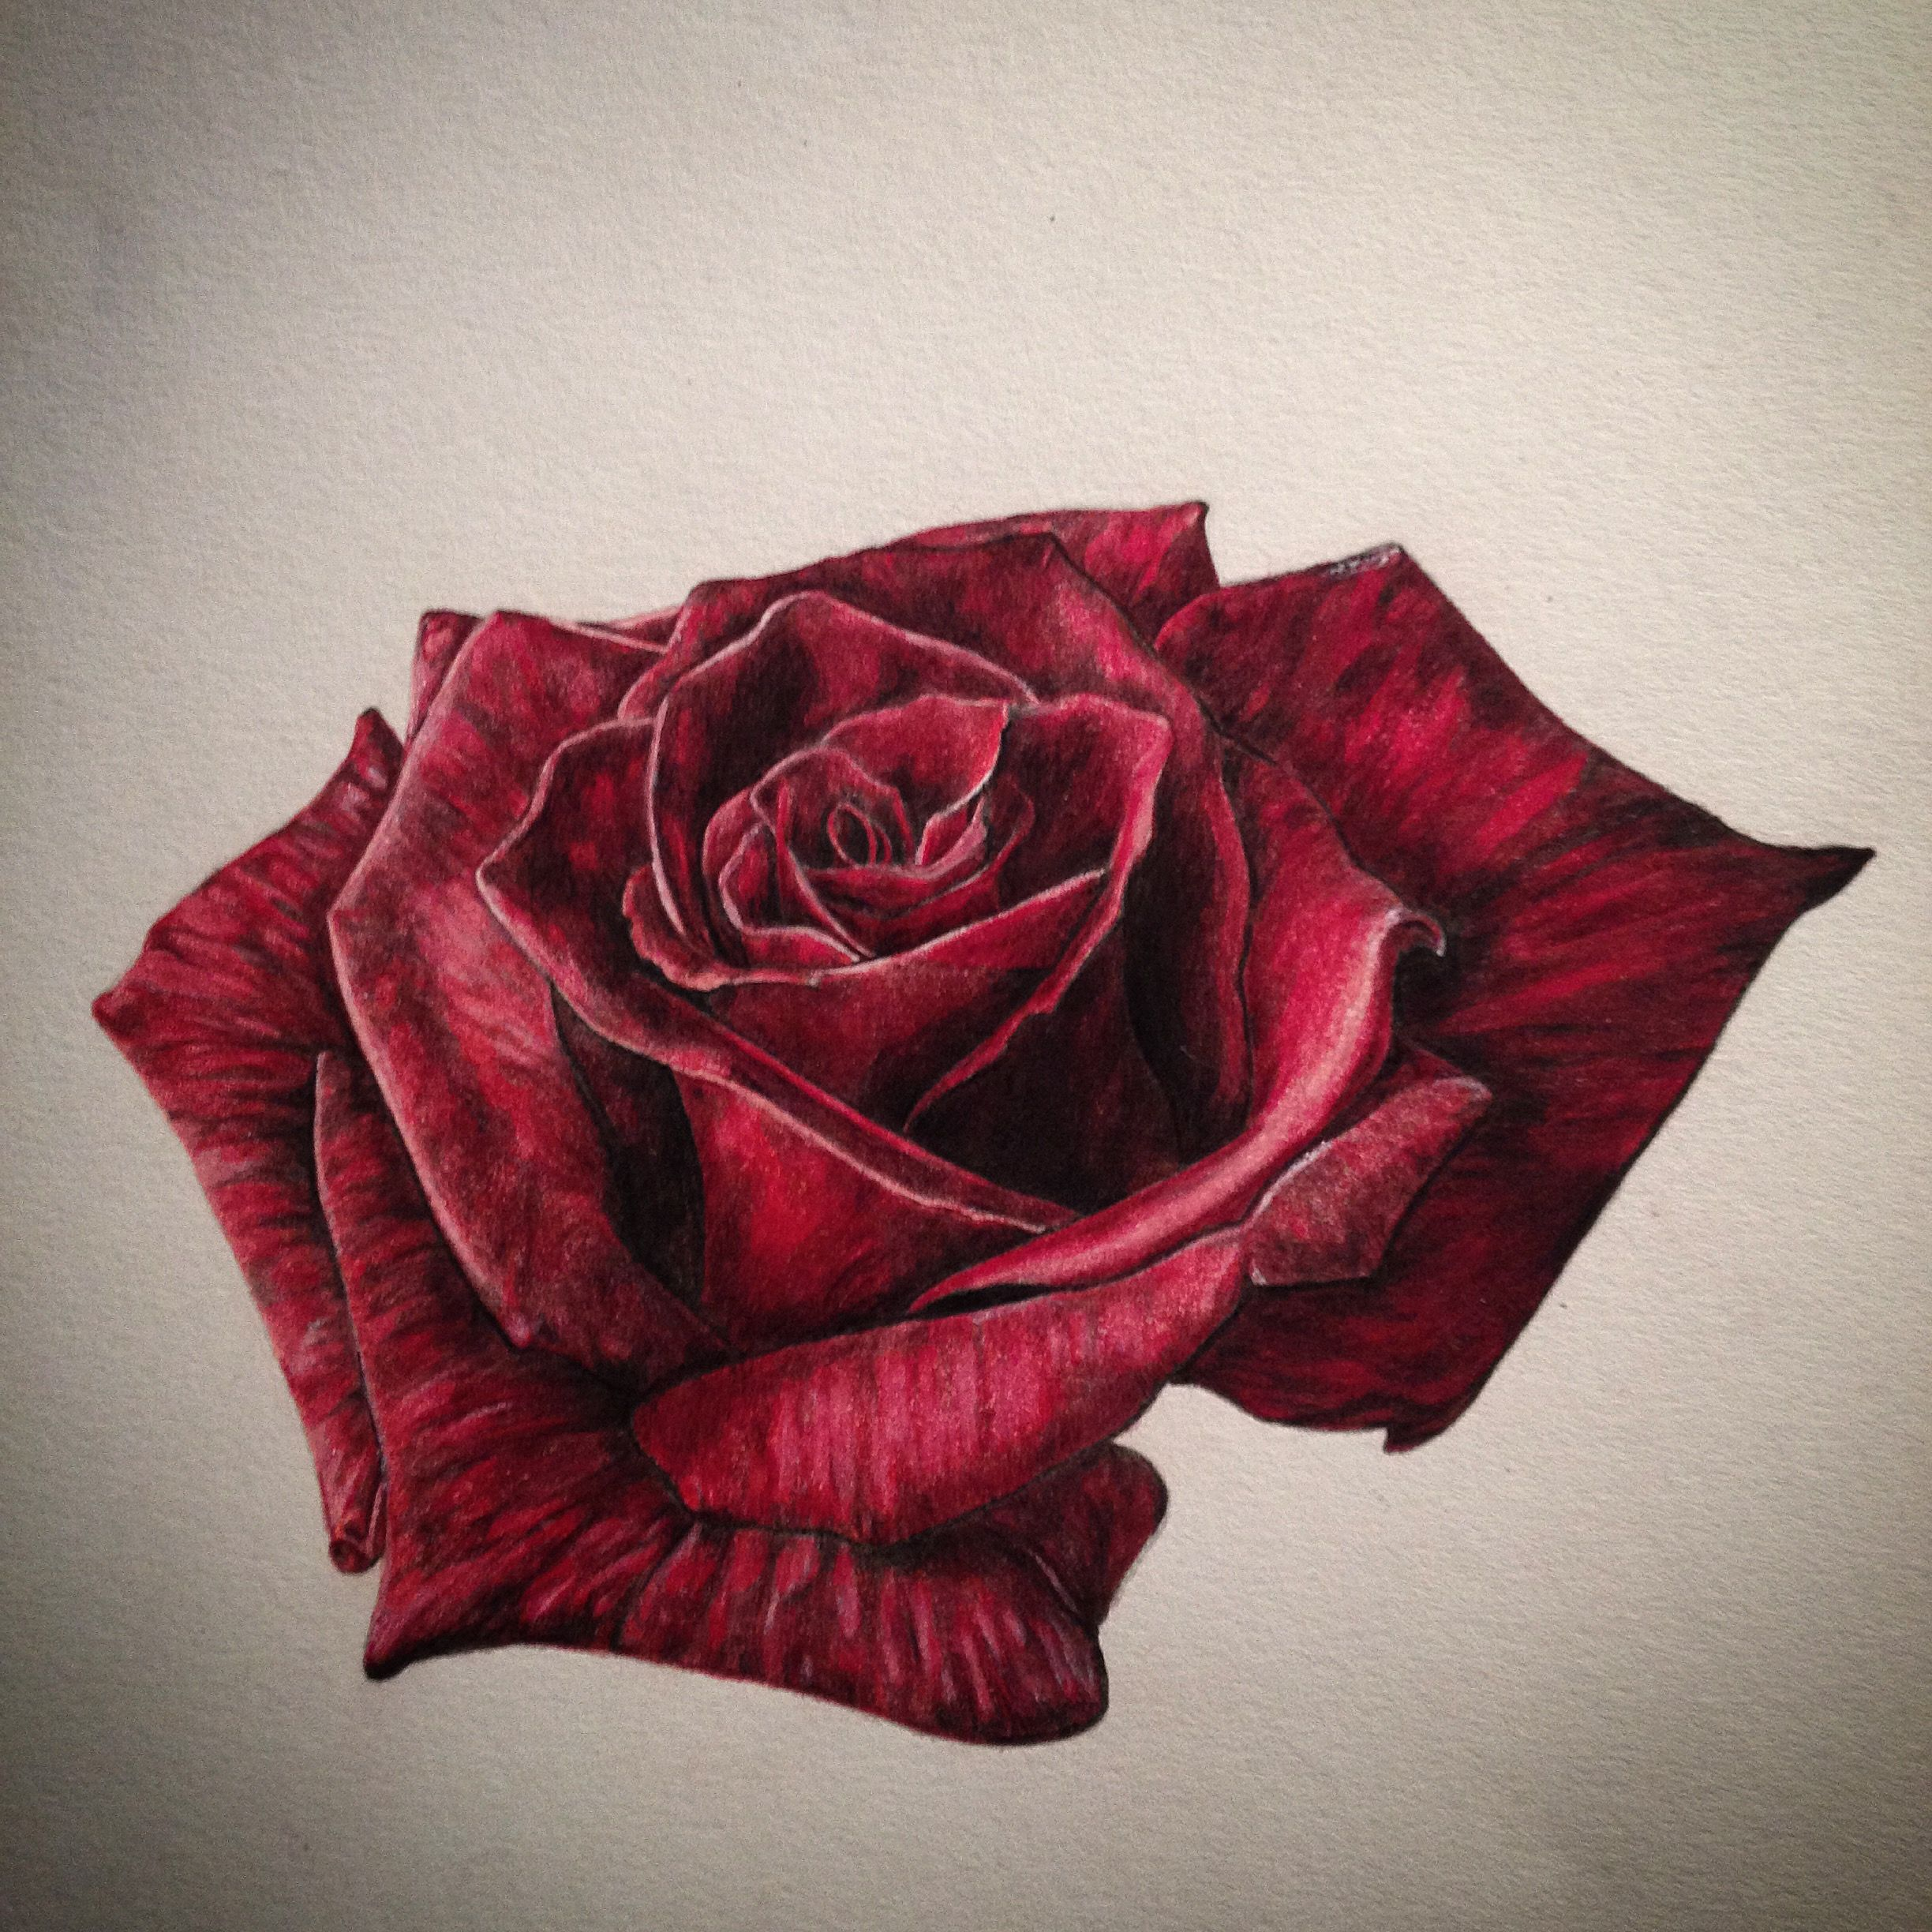 Realistic Rose Drawing Done In Colouring Pencil Realistic Flower Drawing Roses Drawing Realistic Drawings